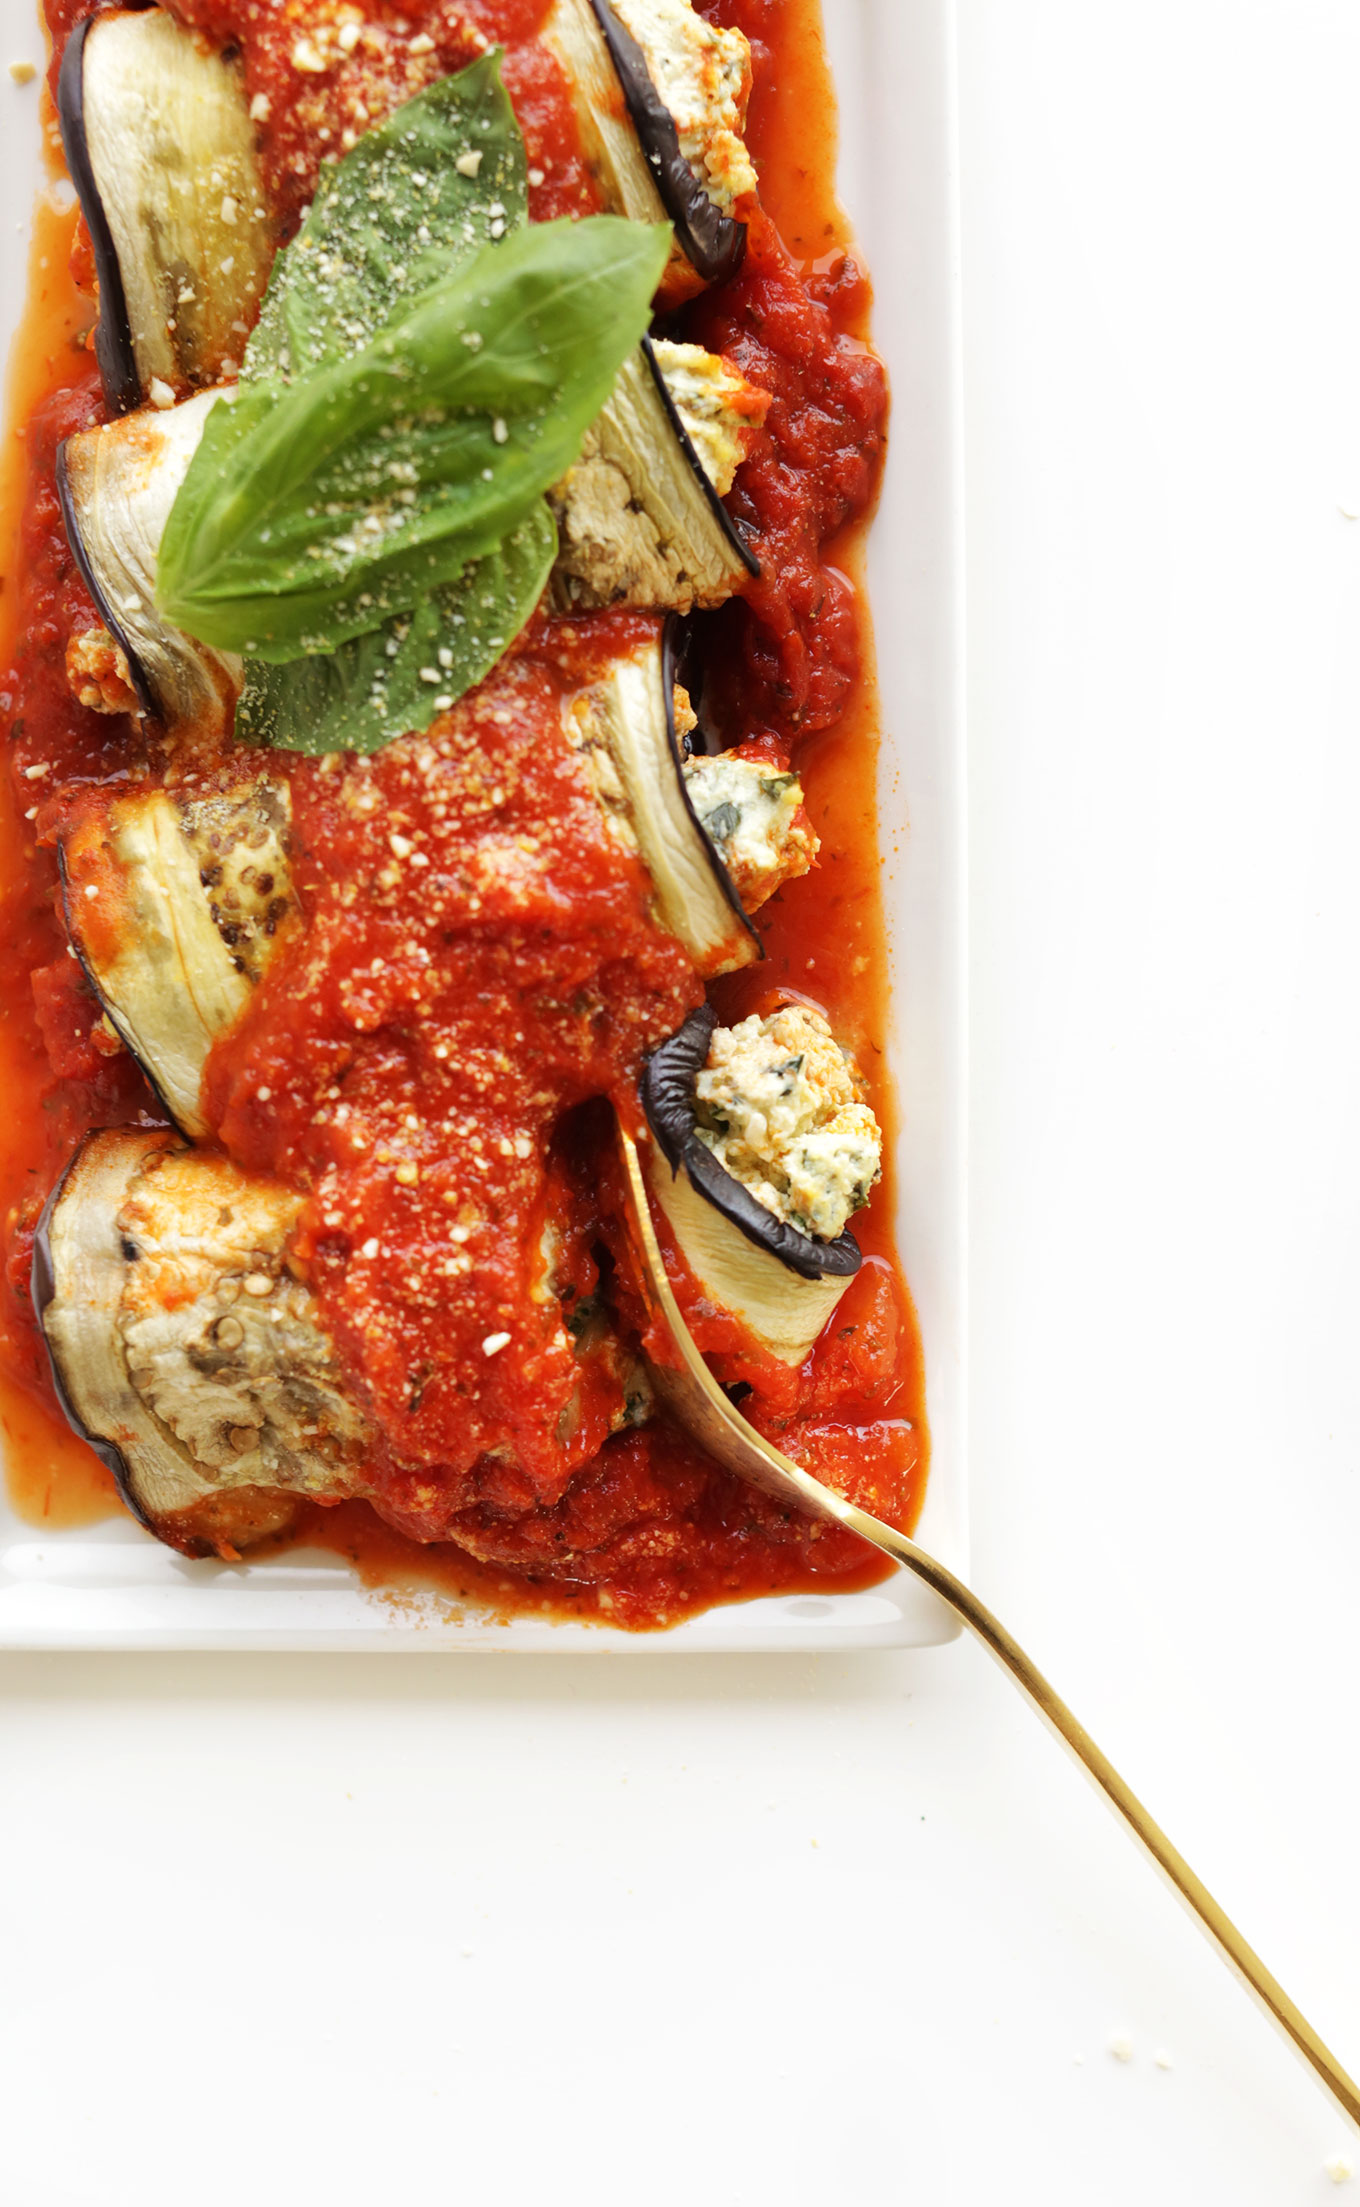 Using a fork to grab a bite of a delicious gluten-free vegan Eggplant Lasagna Roll-Up